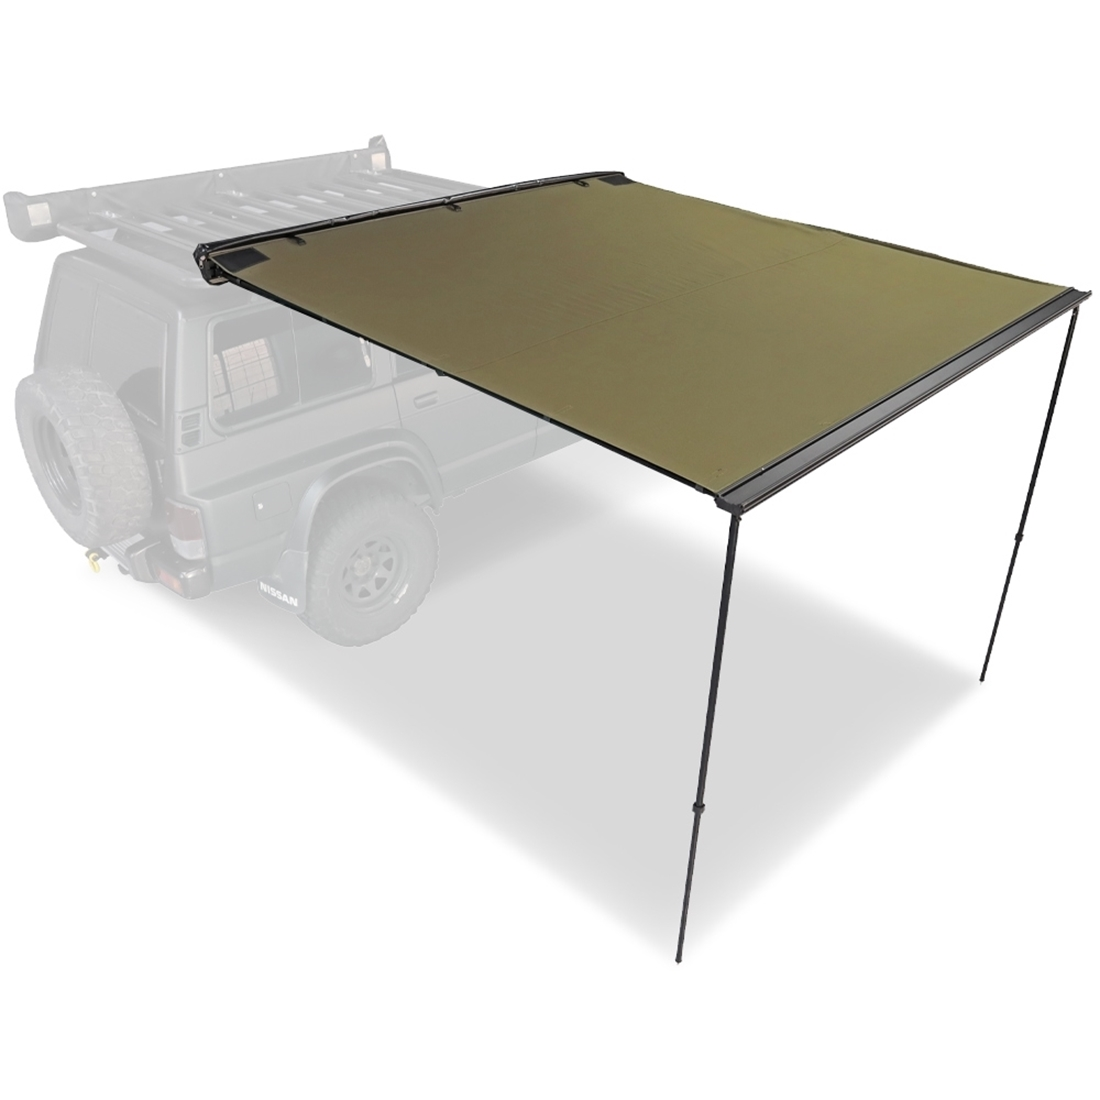 23ZERO Raven 2500 Side Pull Out Awning with LST 2.5 x 2.5m